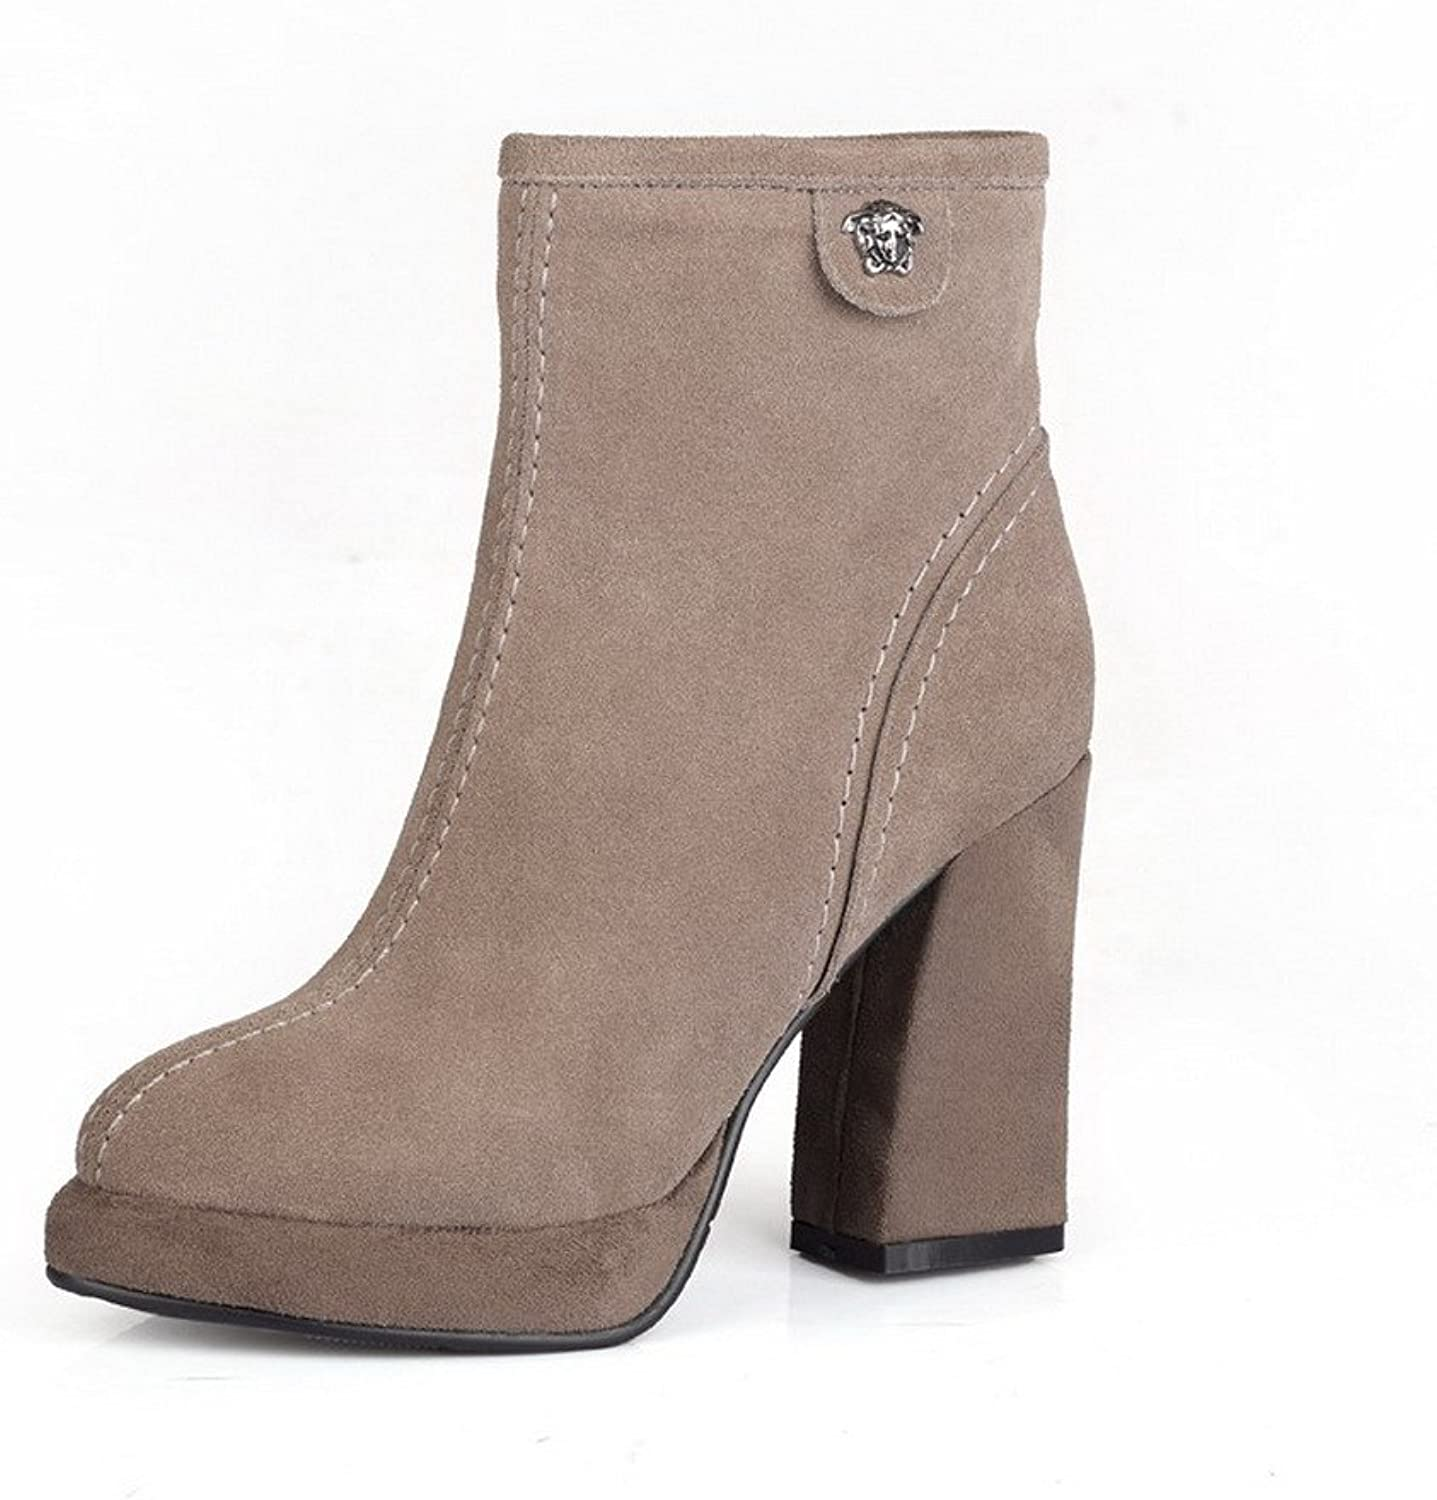 WeenFashion Women's Cow Imitated Suede High-Heels Closed-Toe Boots with Thread